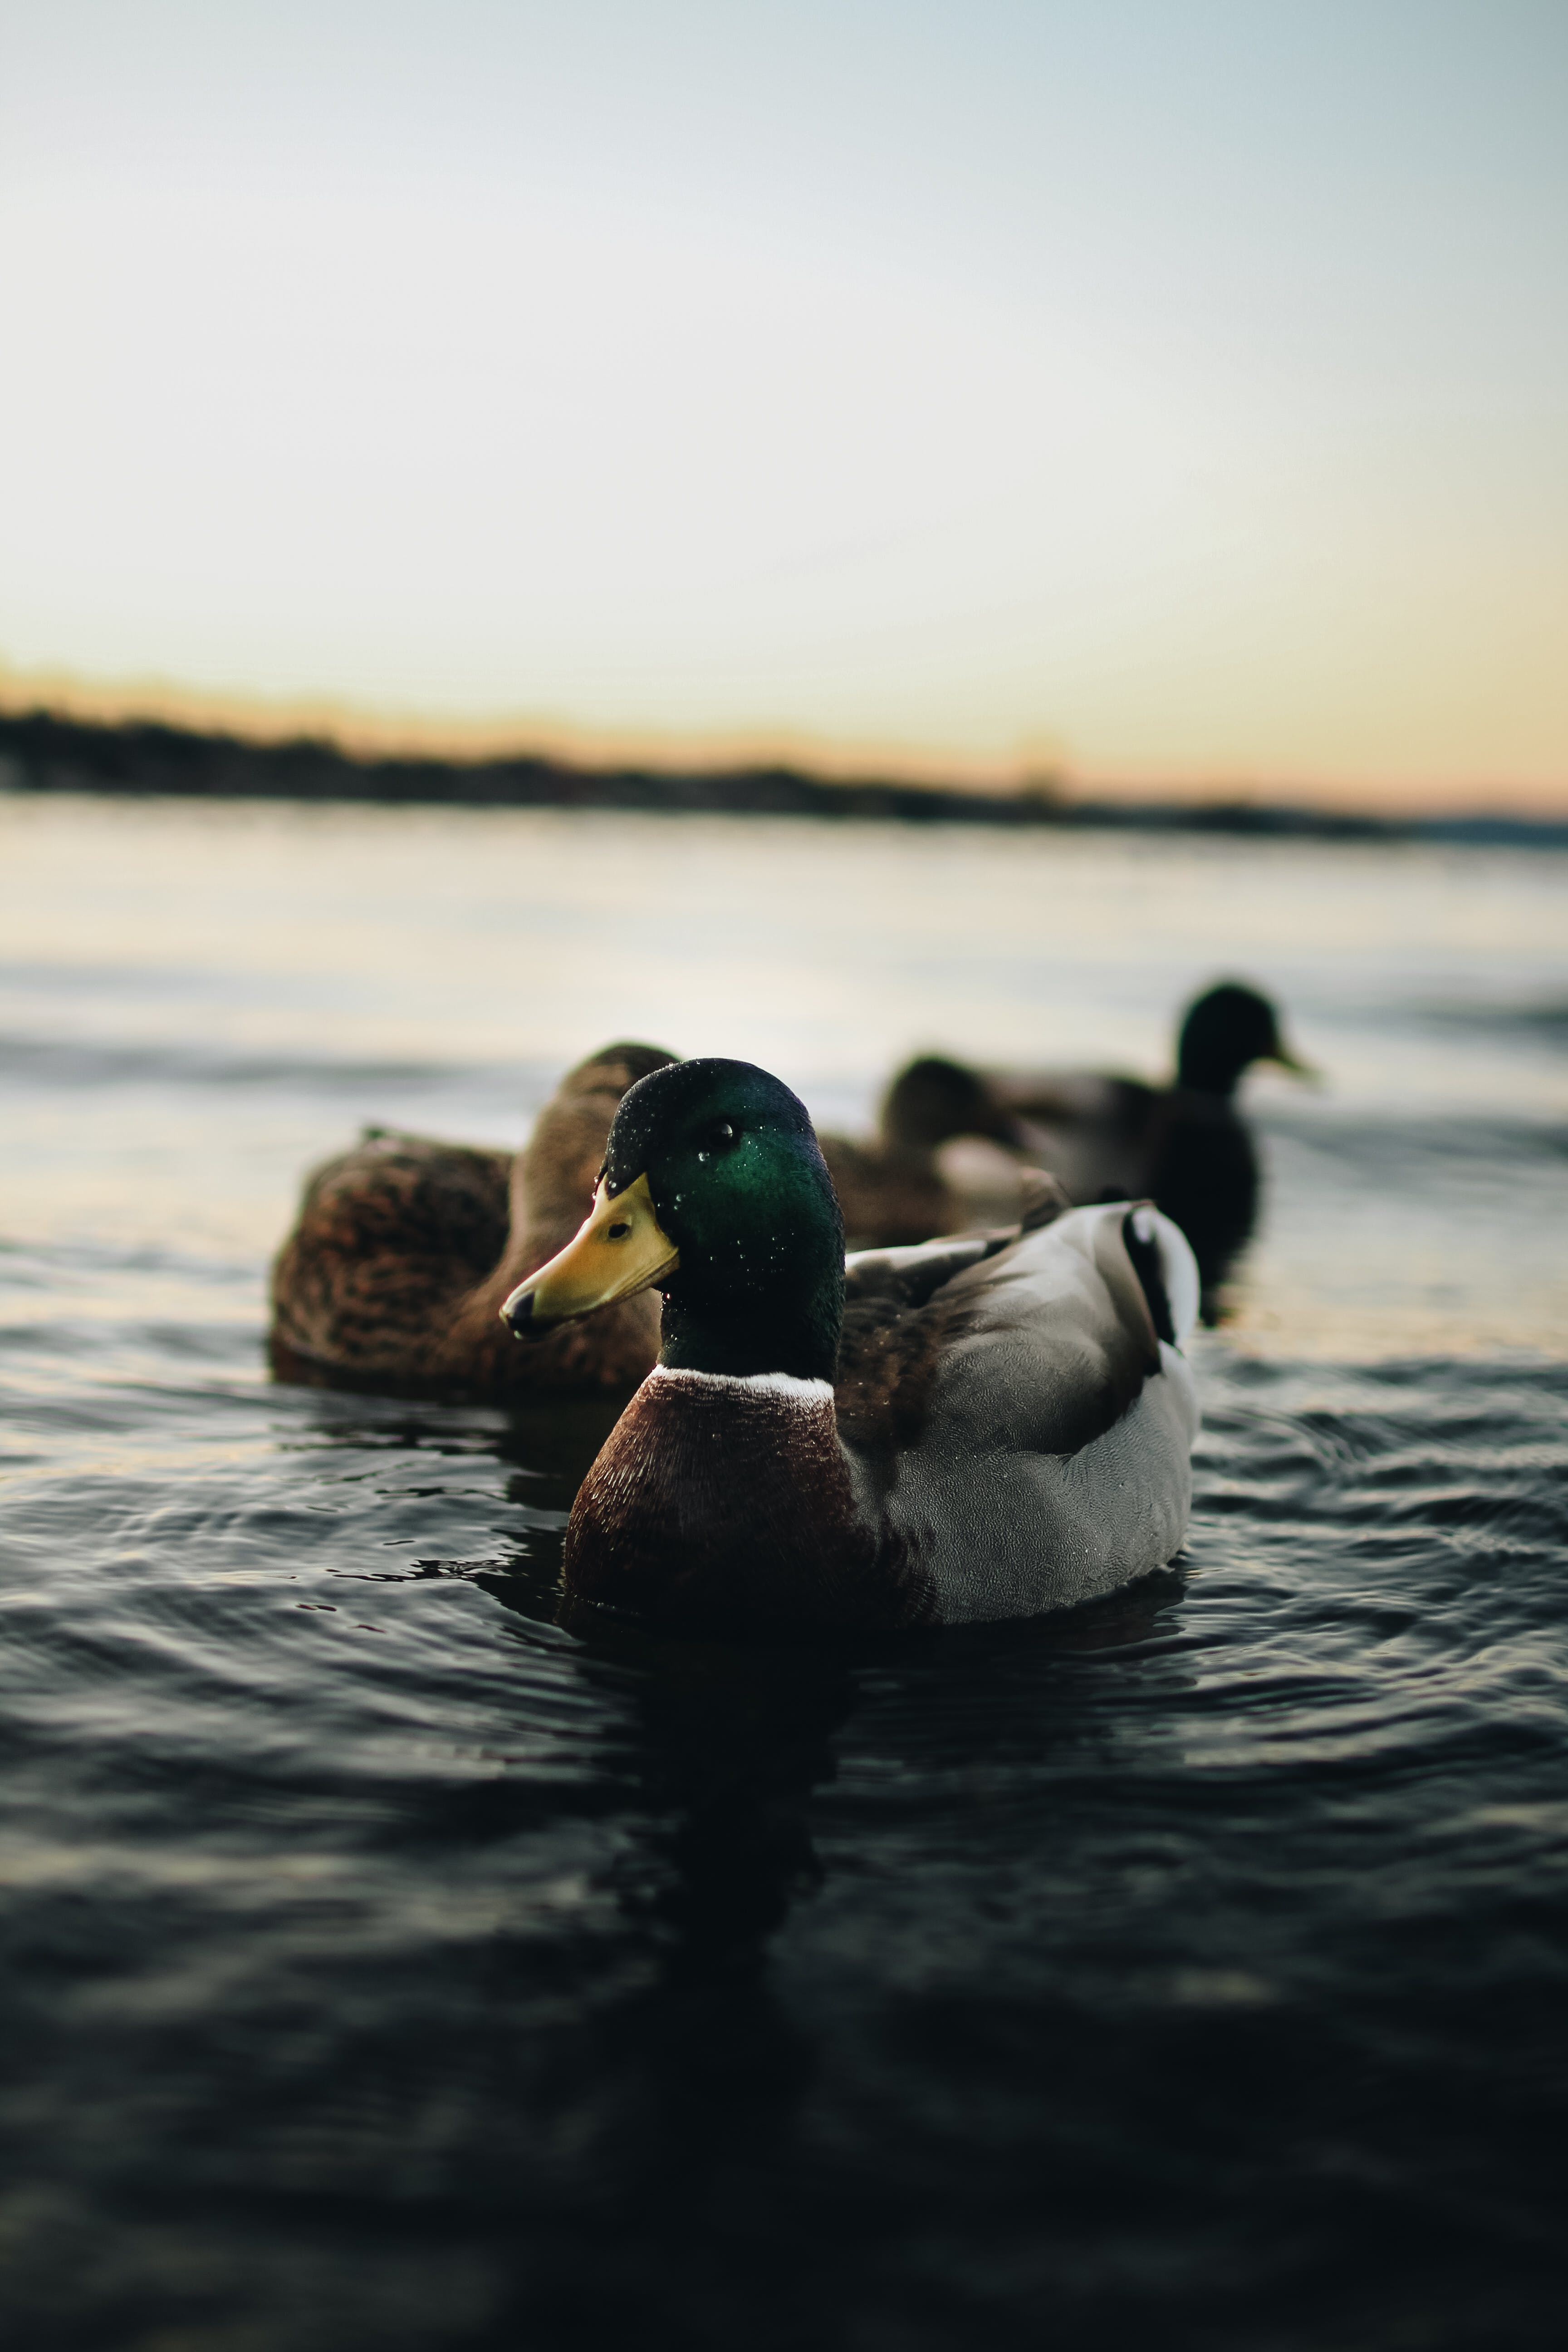 Depth of Field Photography of Mallard Duck on Body of Water